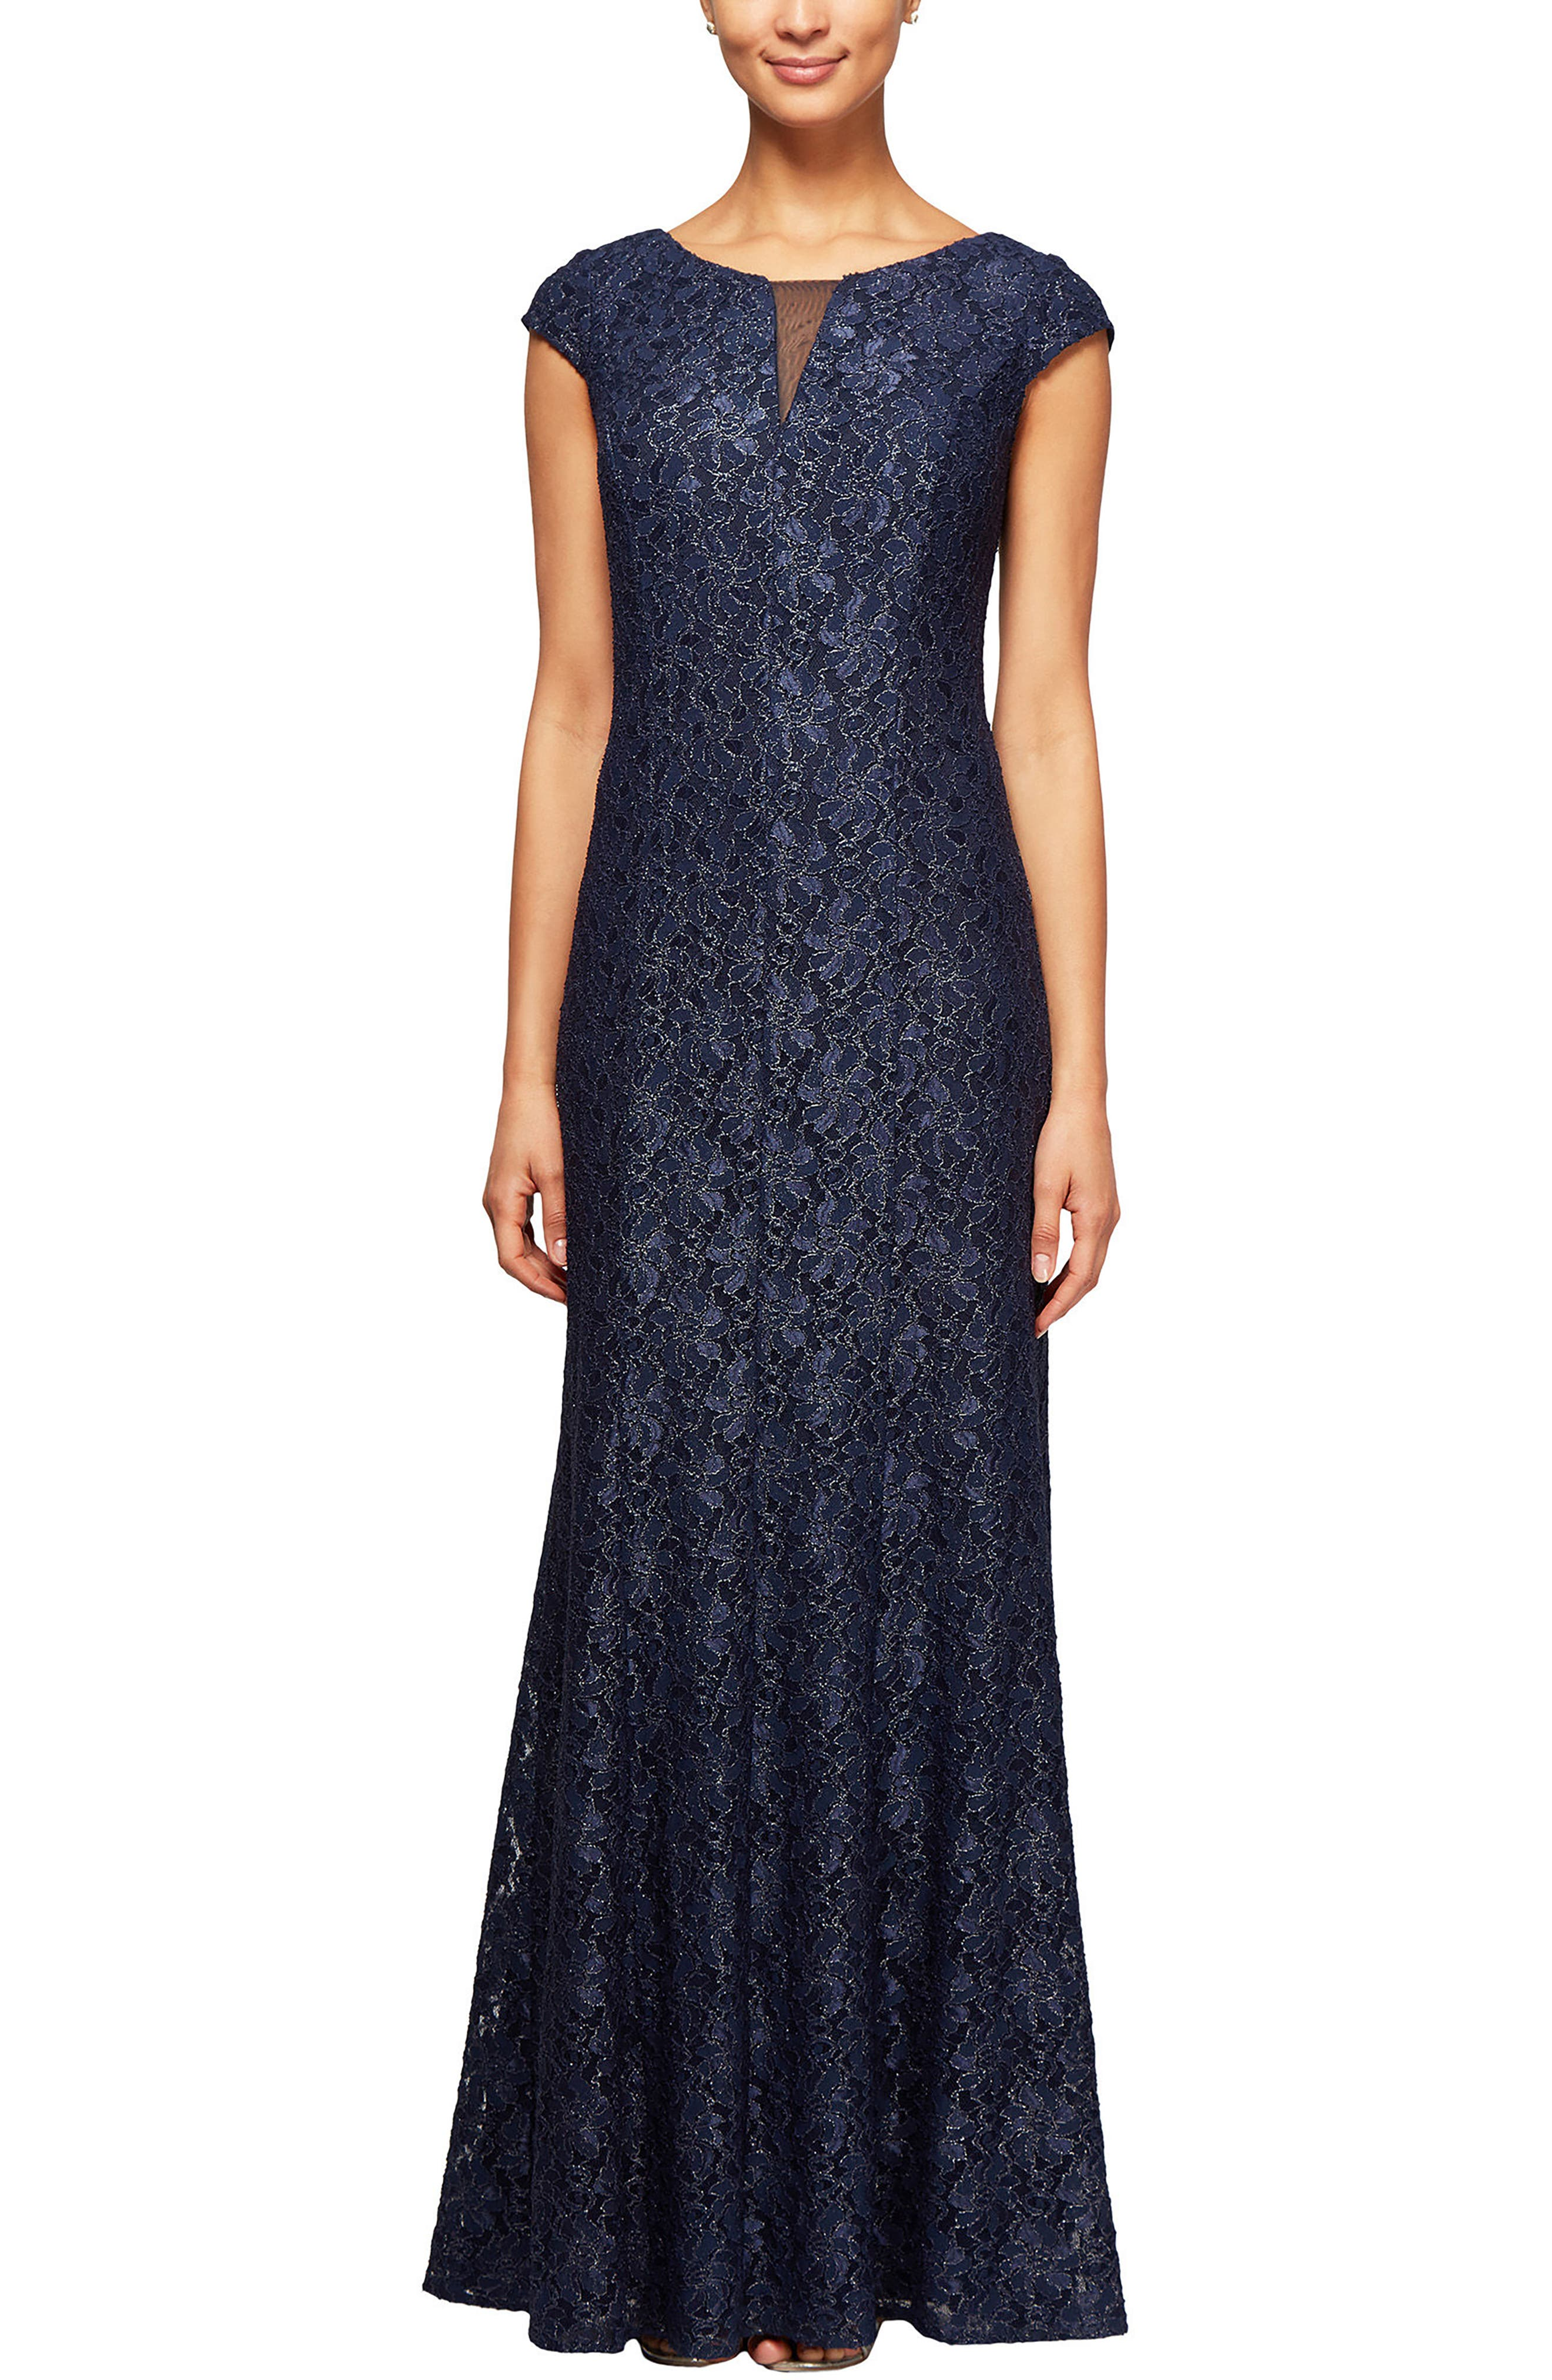 ALEX EVENINGS Metallic Lace A-Line Gown